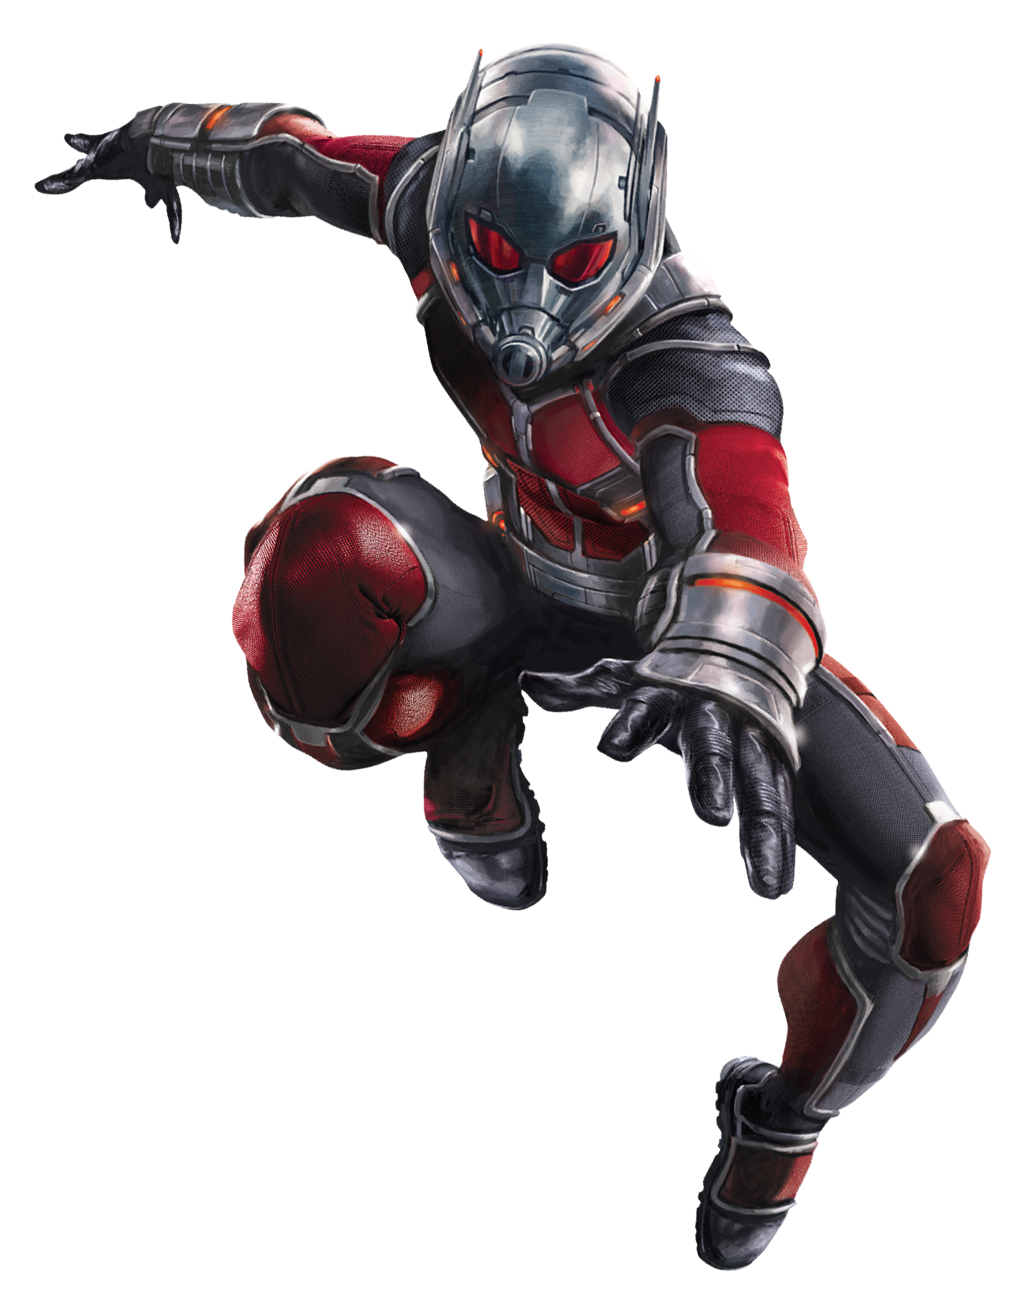 http://vignette4.wikia.nocookie.net/marvelmovies/images/3/3f/Civil_War_Ant-man_Char_art_2.png/revision/latest?cb=20160410151321